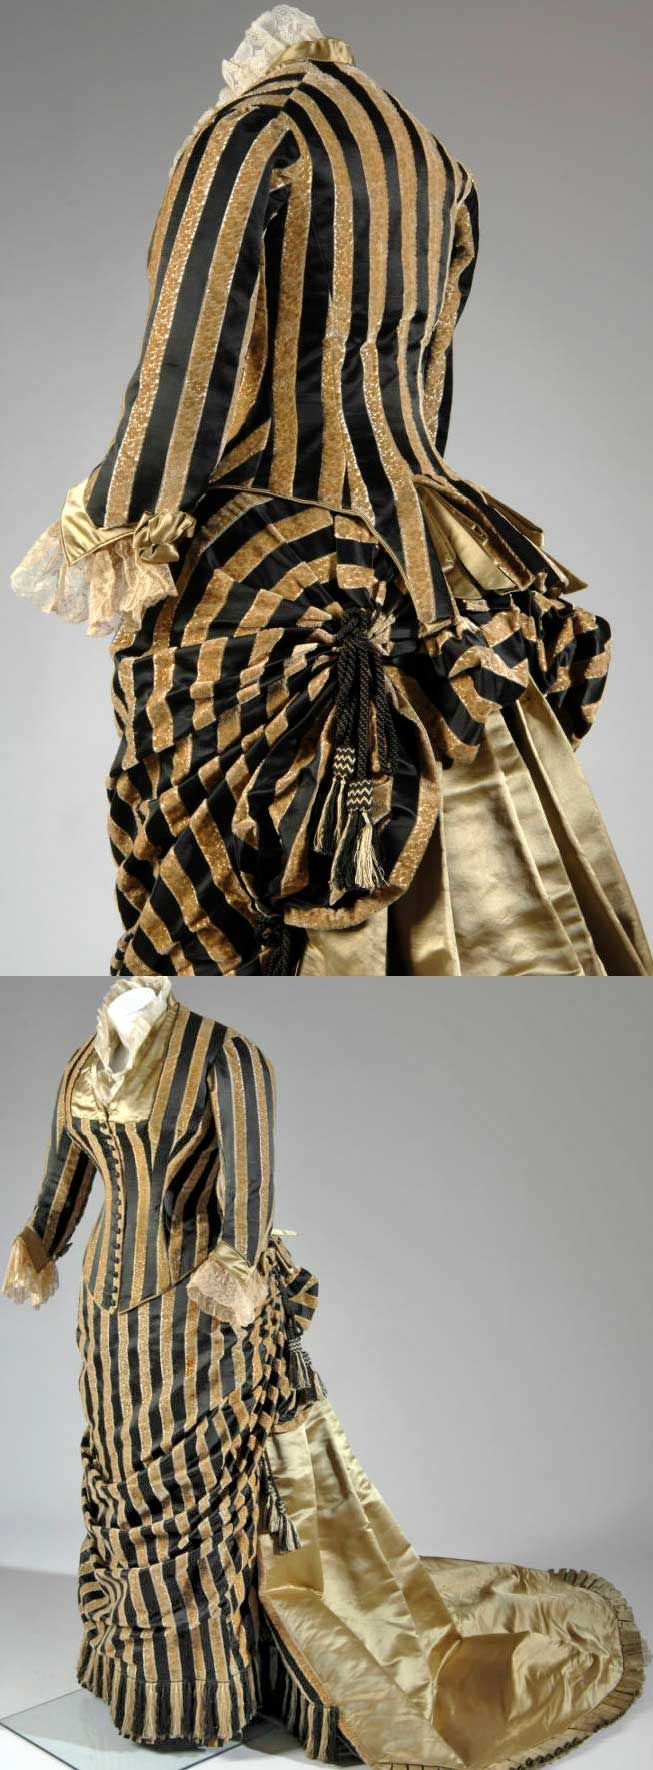 Evening dress, Worth, ca. 1884. Striped dark and light brown silk brocade and velvet. Long bodice with portrait neckline trimmed in brown green satin; off-white lace cuffs. Skirt with brown green satin back panel that extends into a train. Trimmed with dark and light brown silk fringe and tassels.